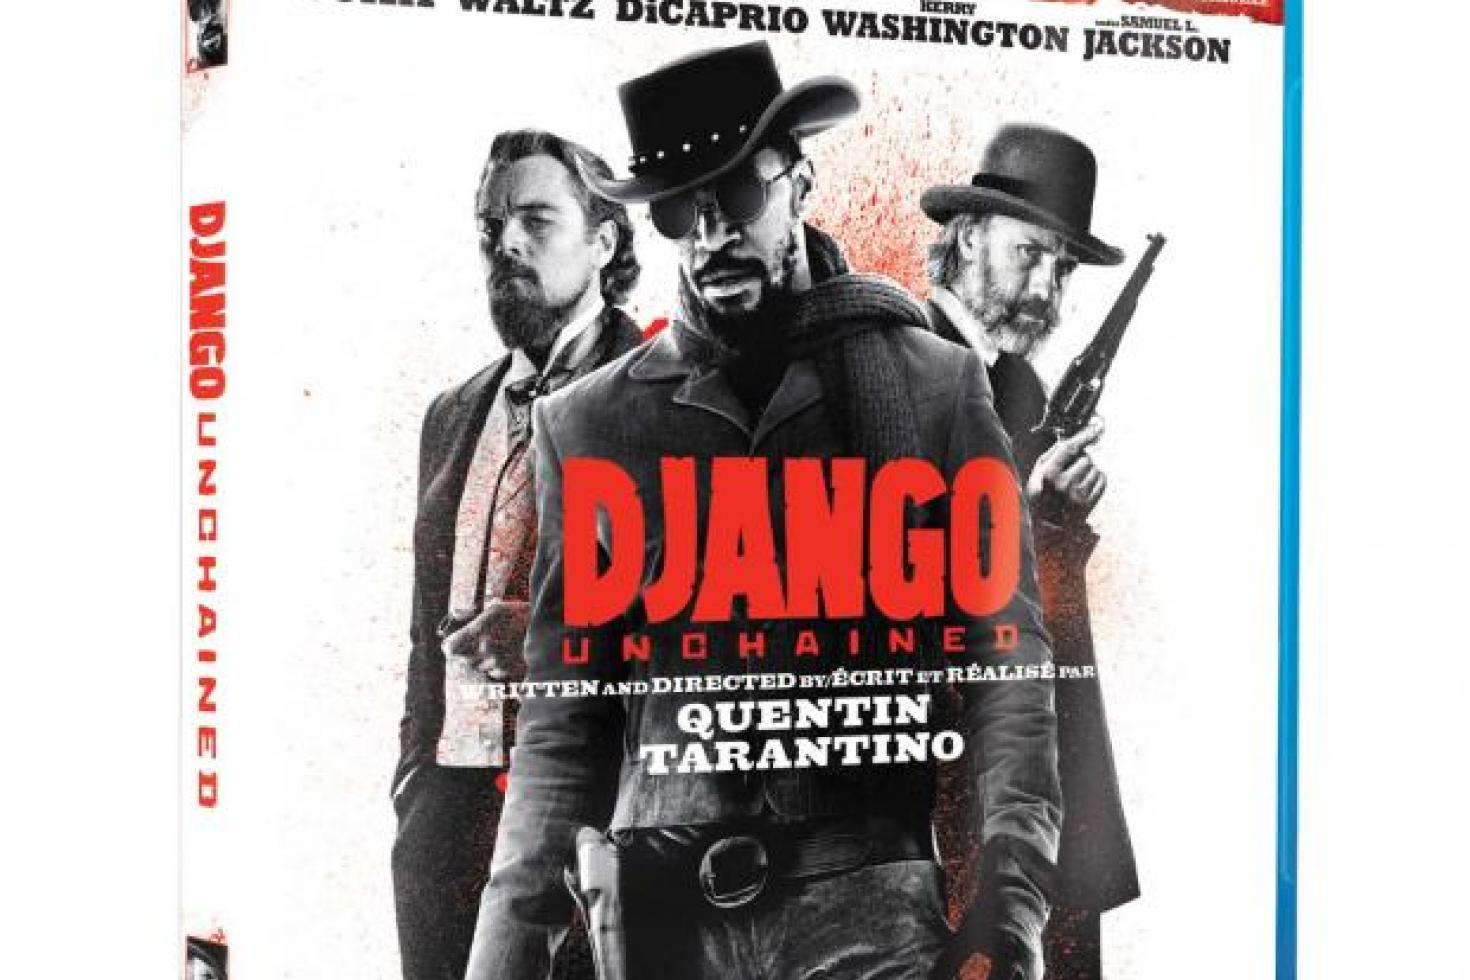 the uniqueness of django unchained Quentin tarantino won a best screenplay oscar for django unchainednow two writers are saying he stole their script.